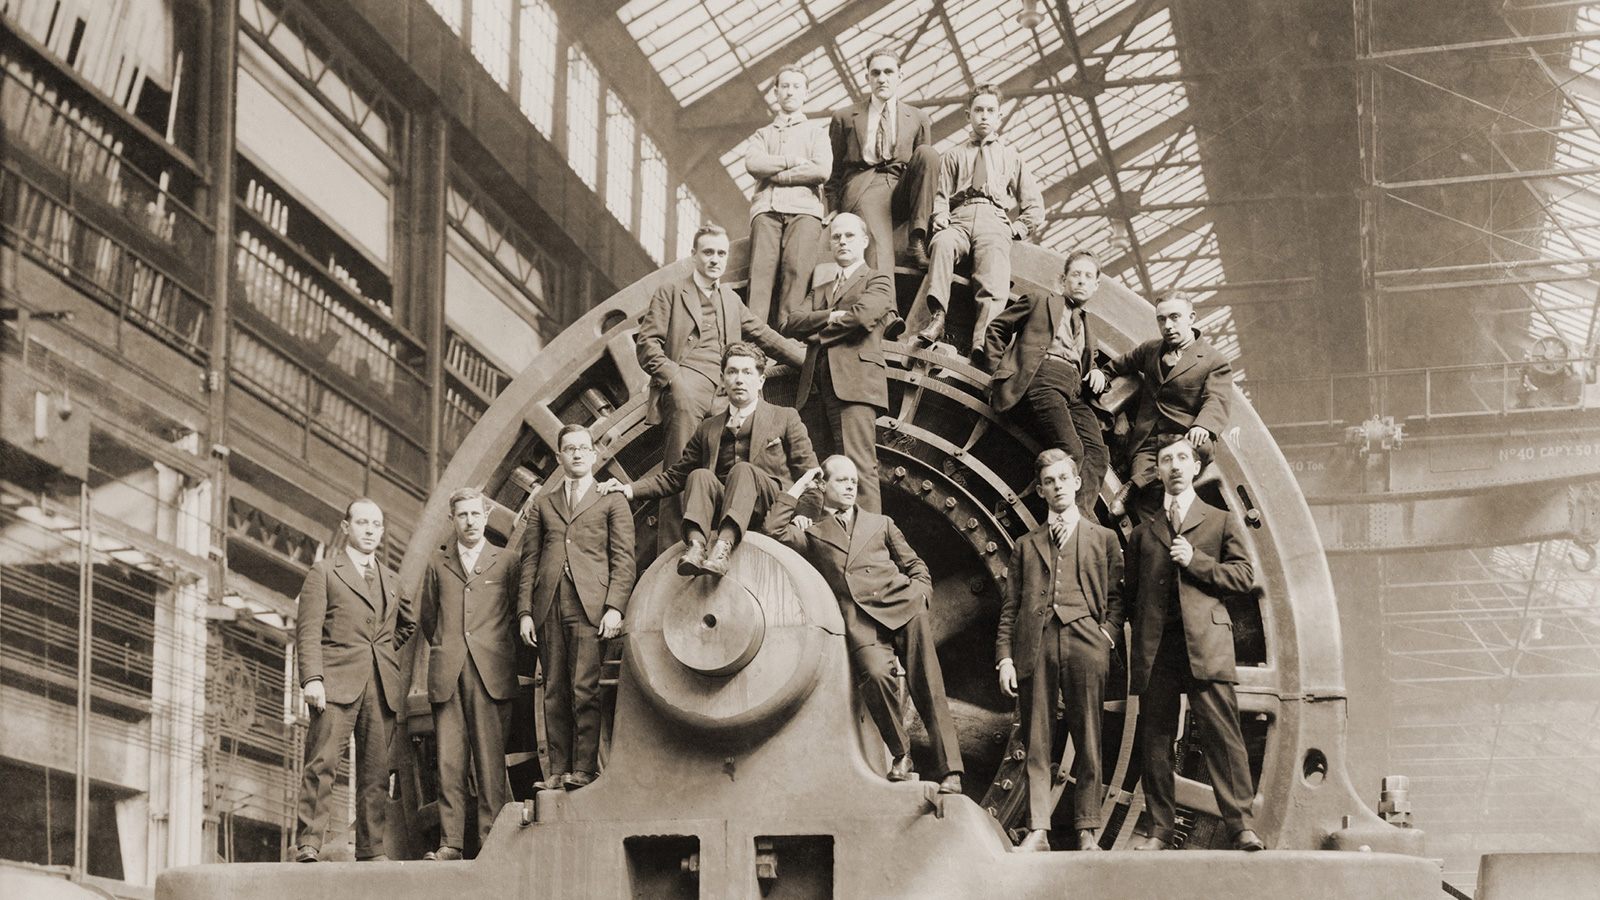 Sepia-toned photograph of massive electrical generator with 14 men standing and seated on it